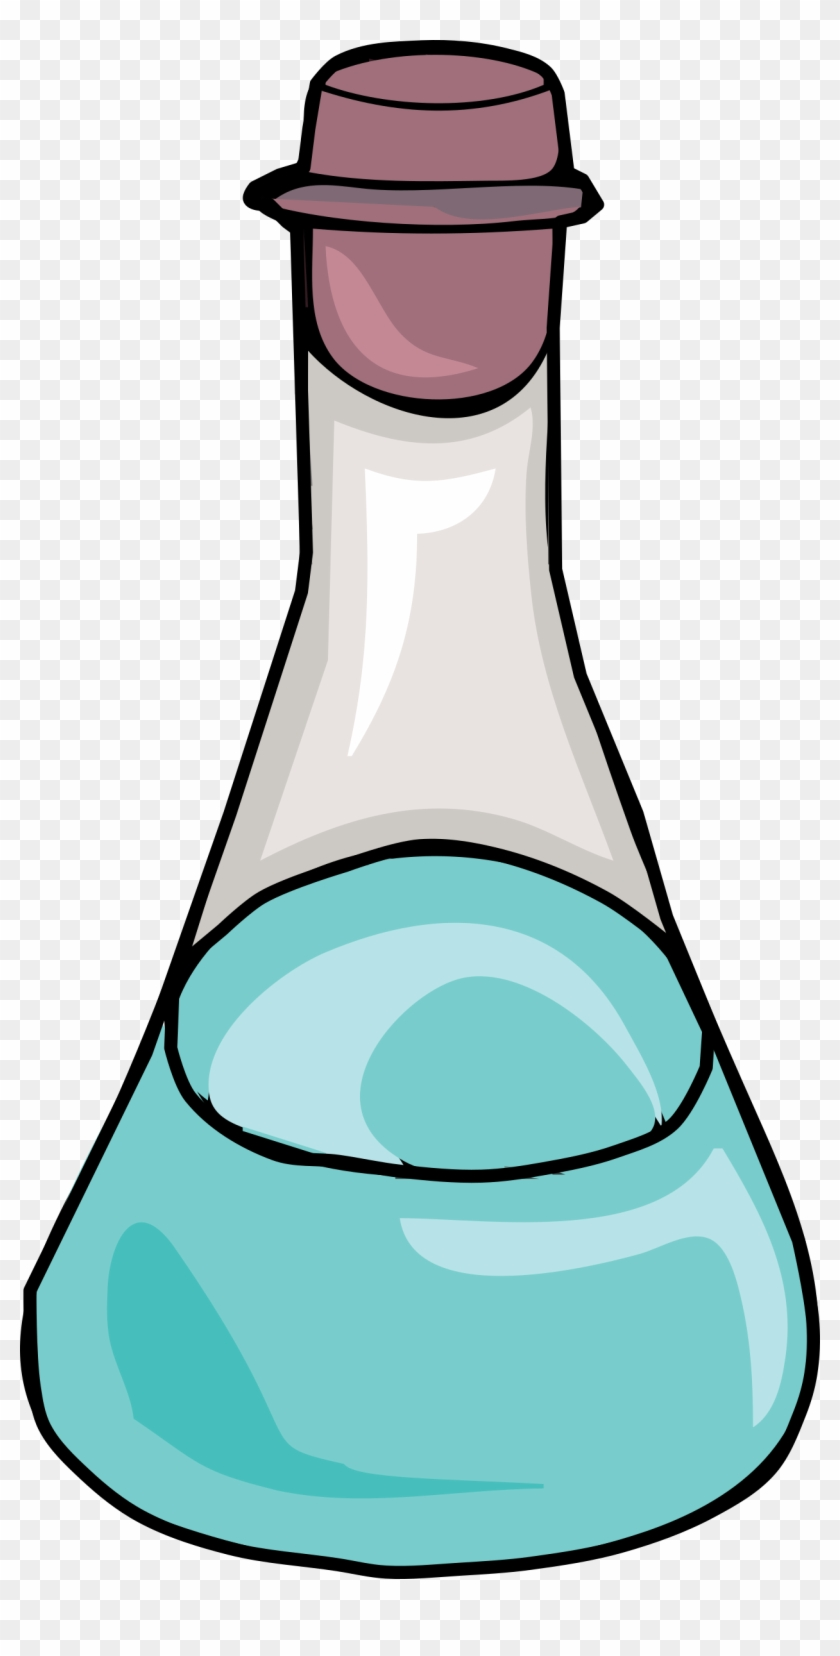 This Free Icons Png Design Of Science Flask Clipart #497440